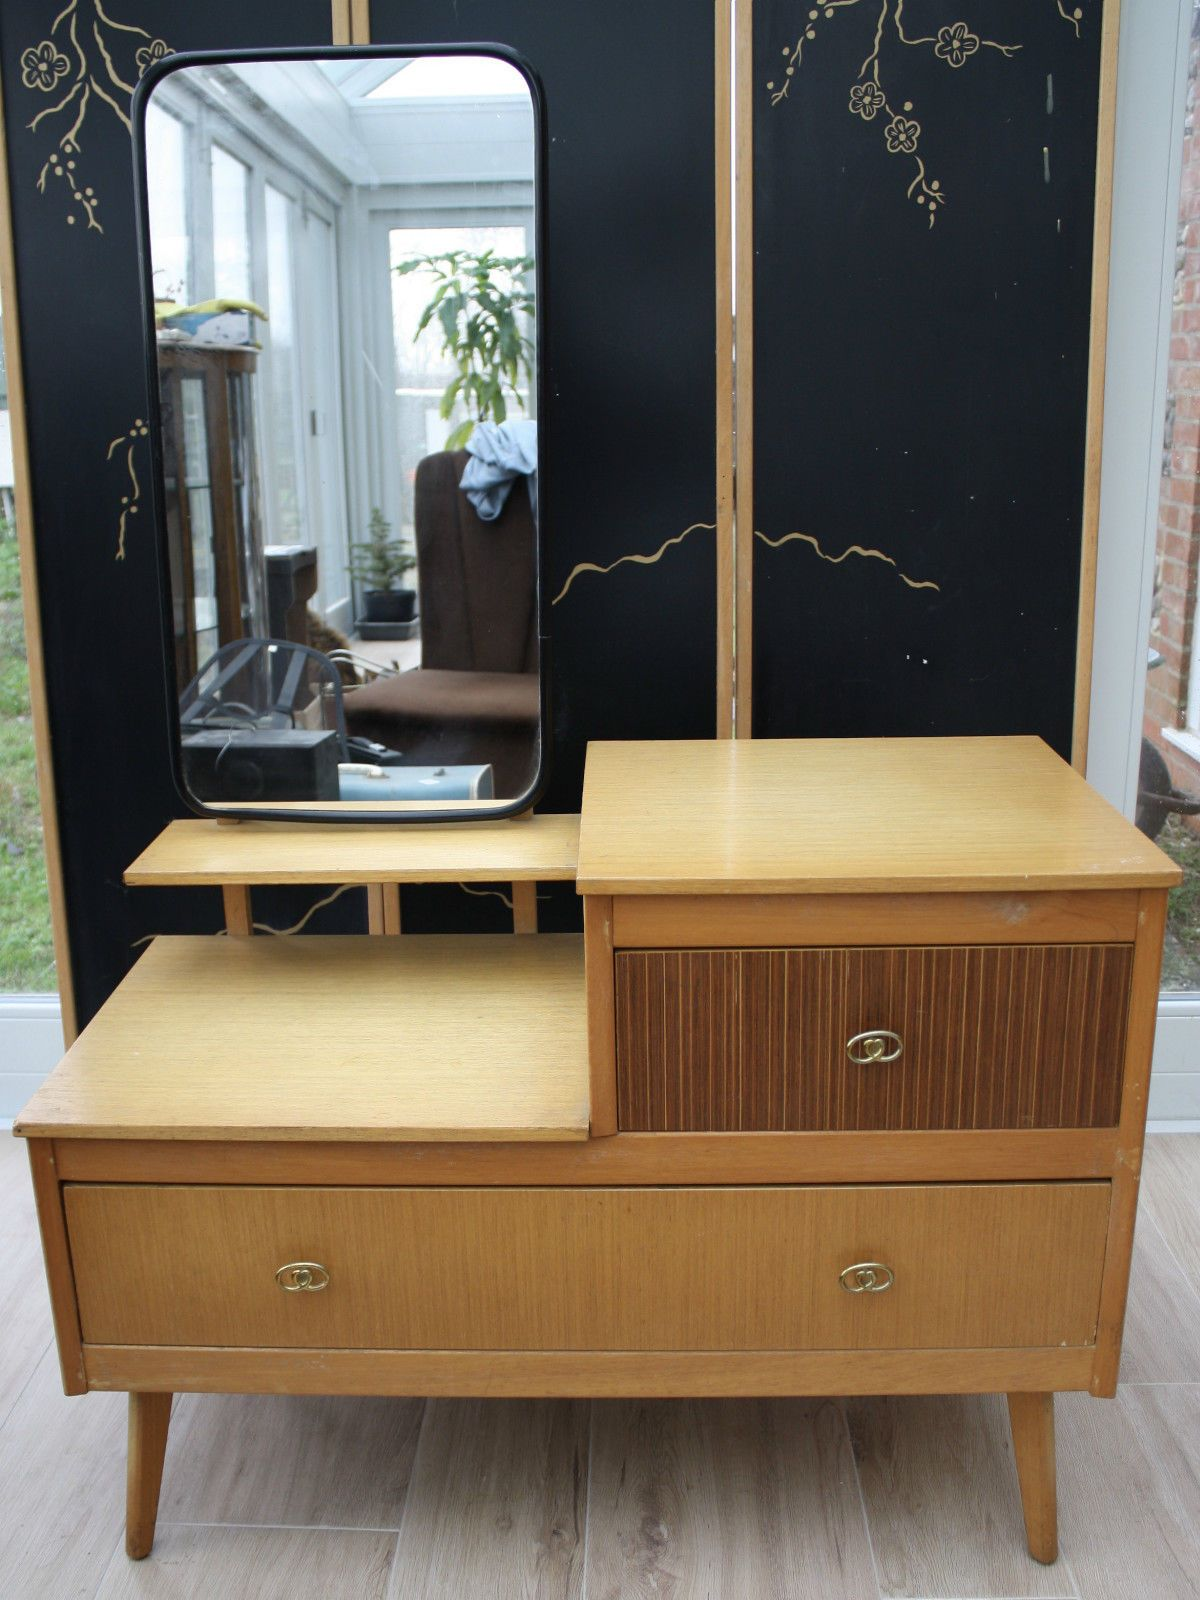 VINTAGE 1950s DRESSING TABLE/CHEST OF DRAWERS eBay